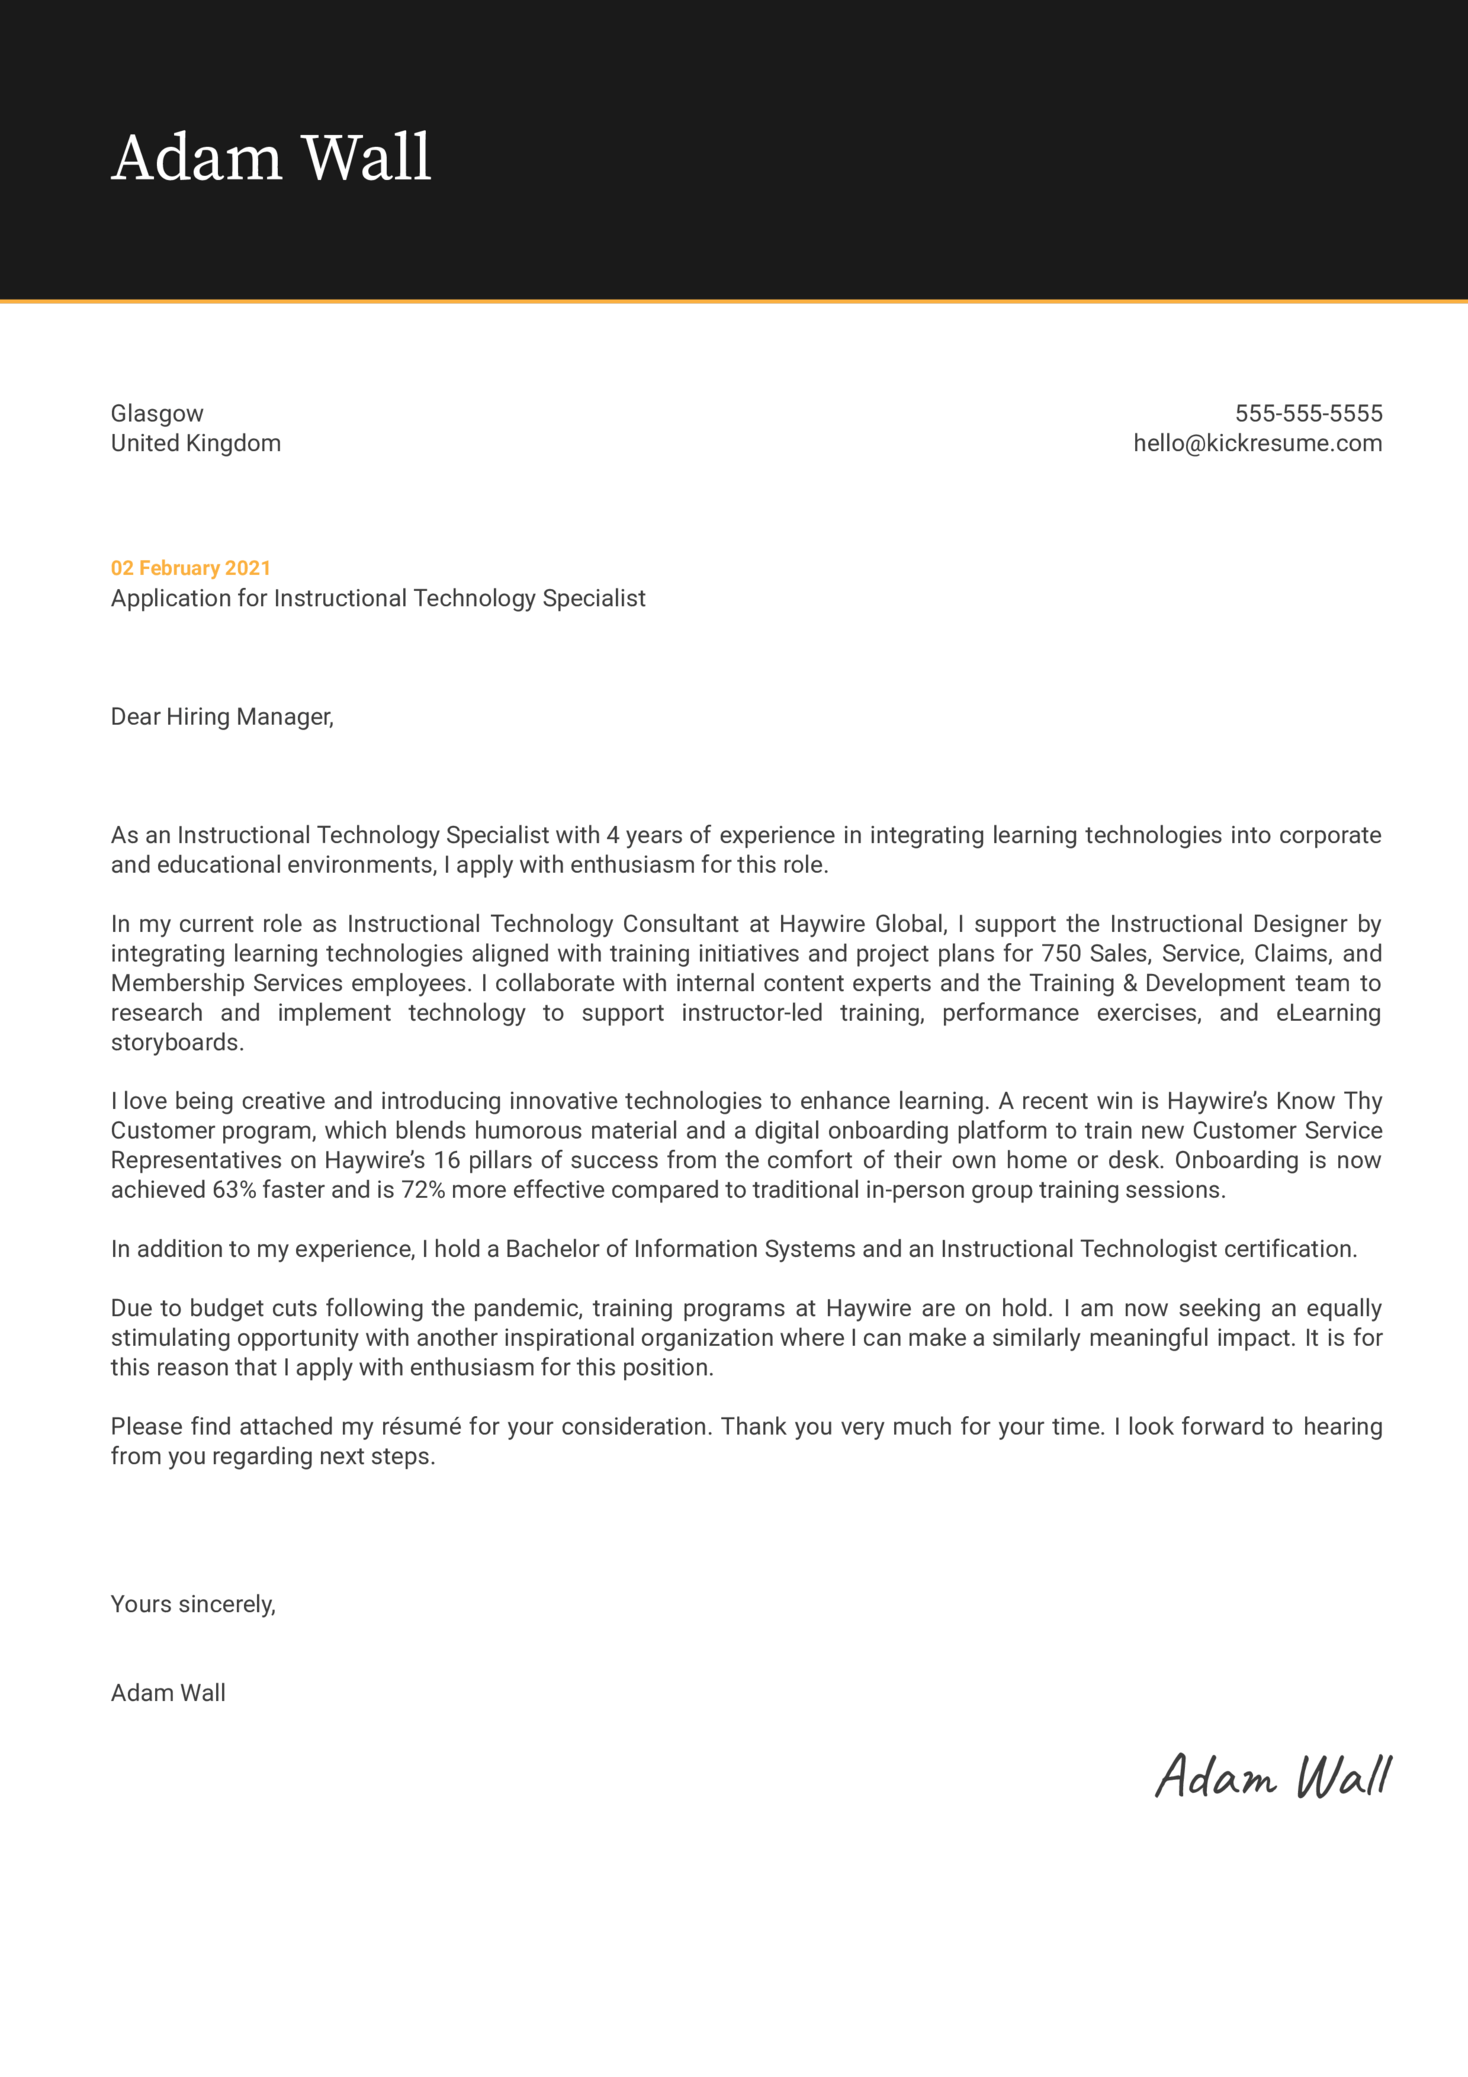 Instructional Technology Specialist Cover Letter Template